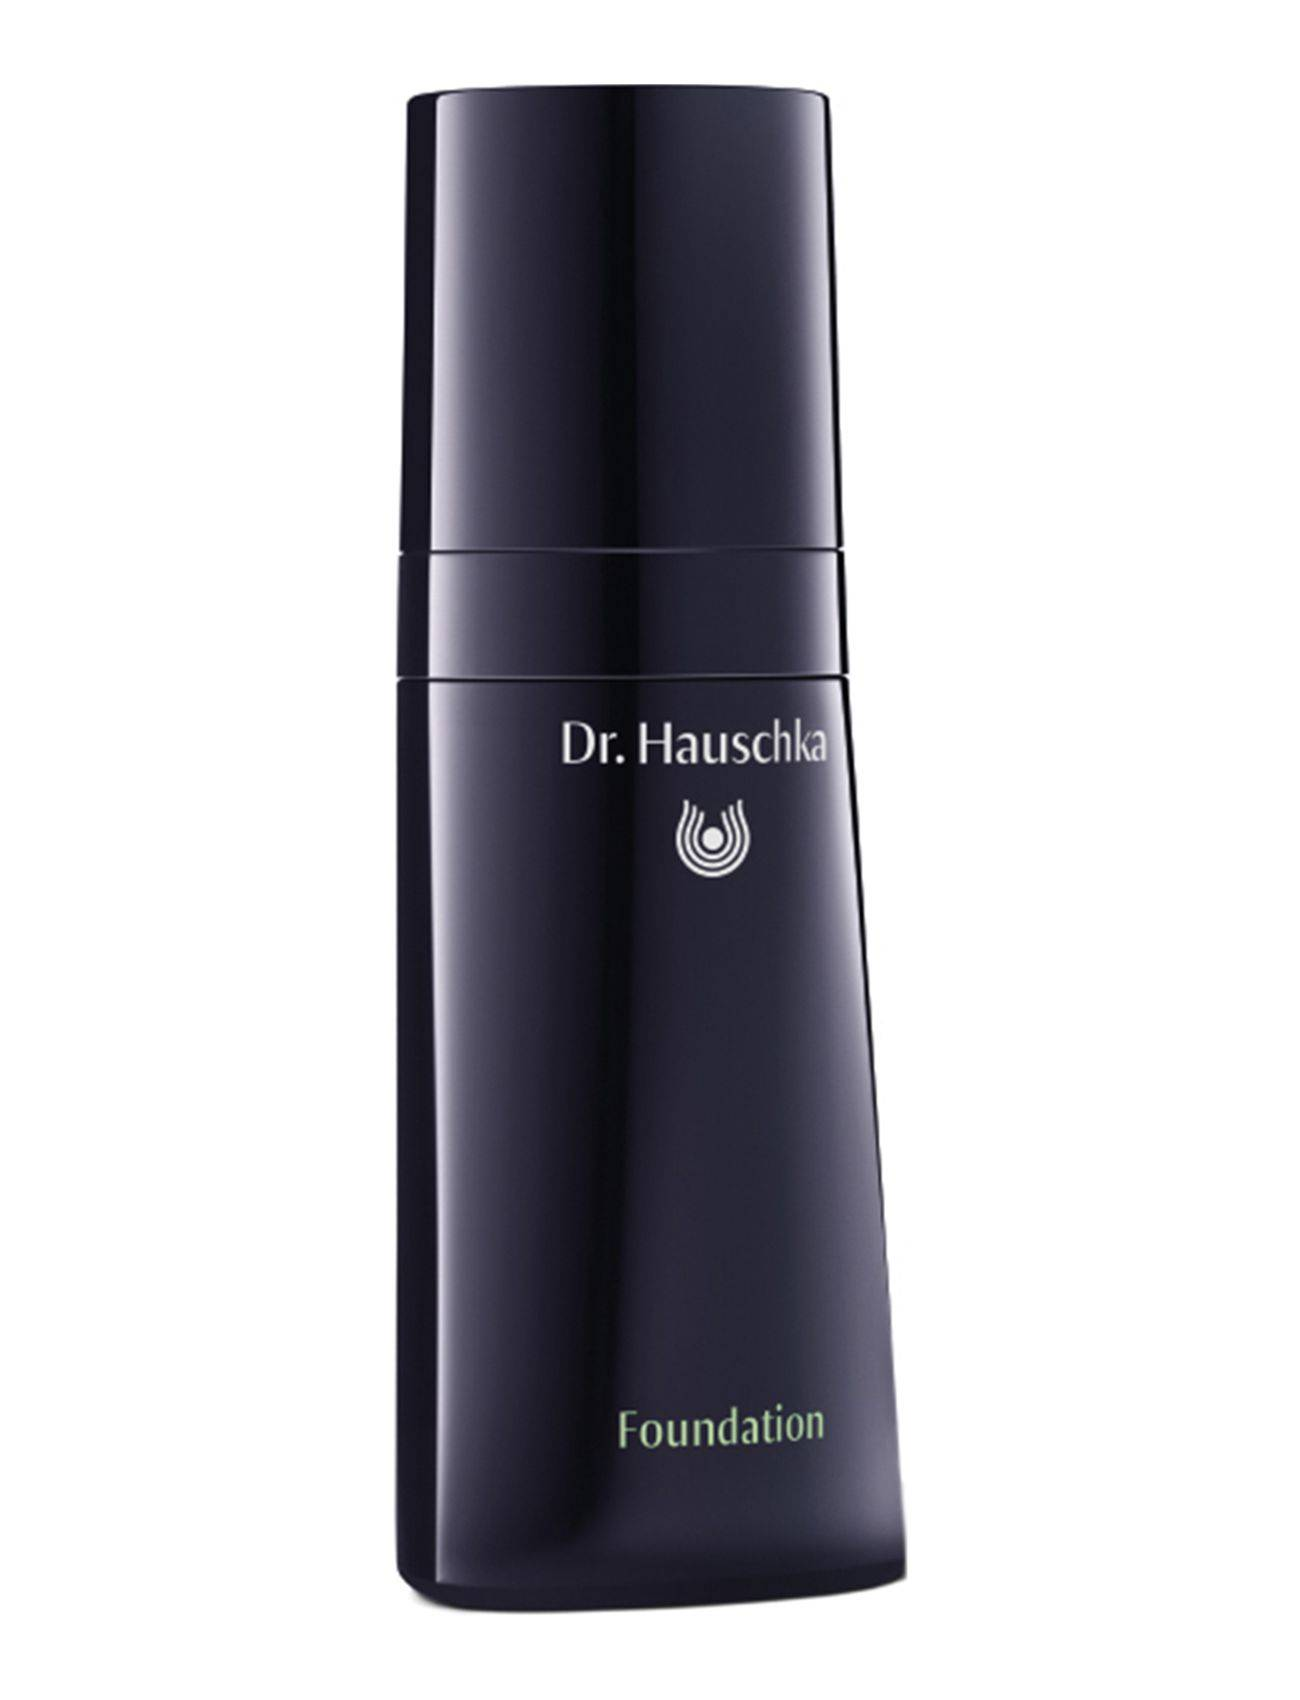 Dr. Hauschka Foundation 05 Chestnut